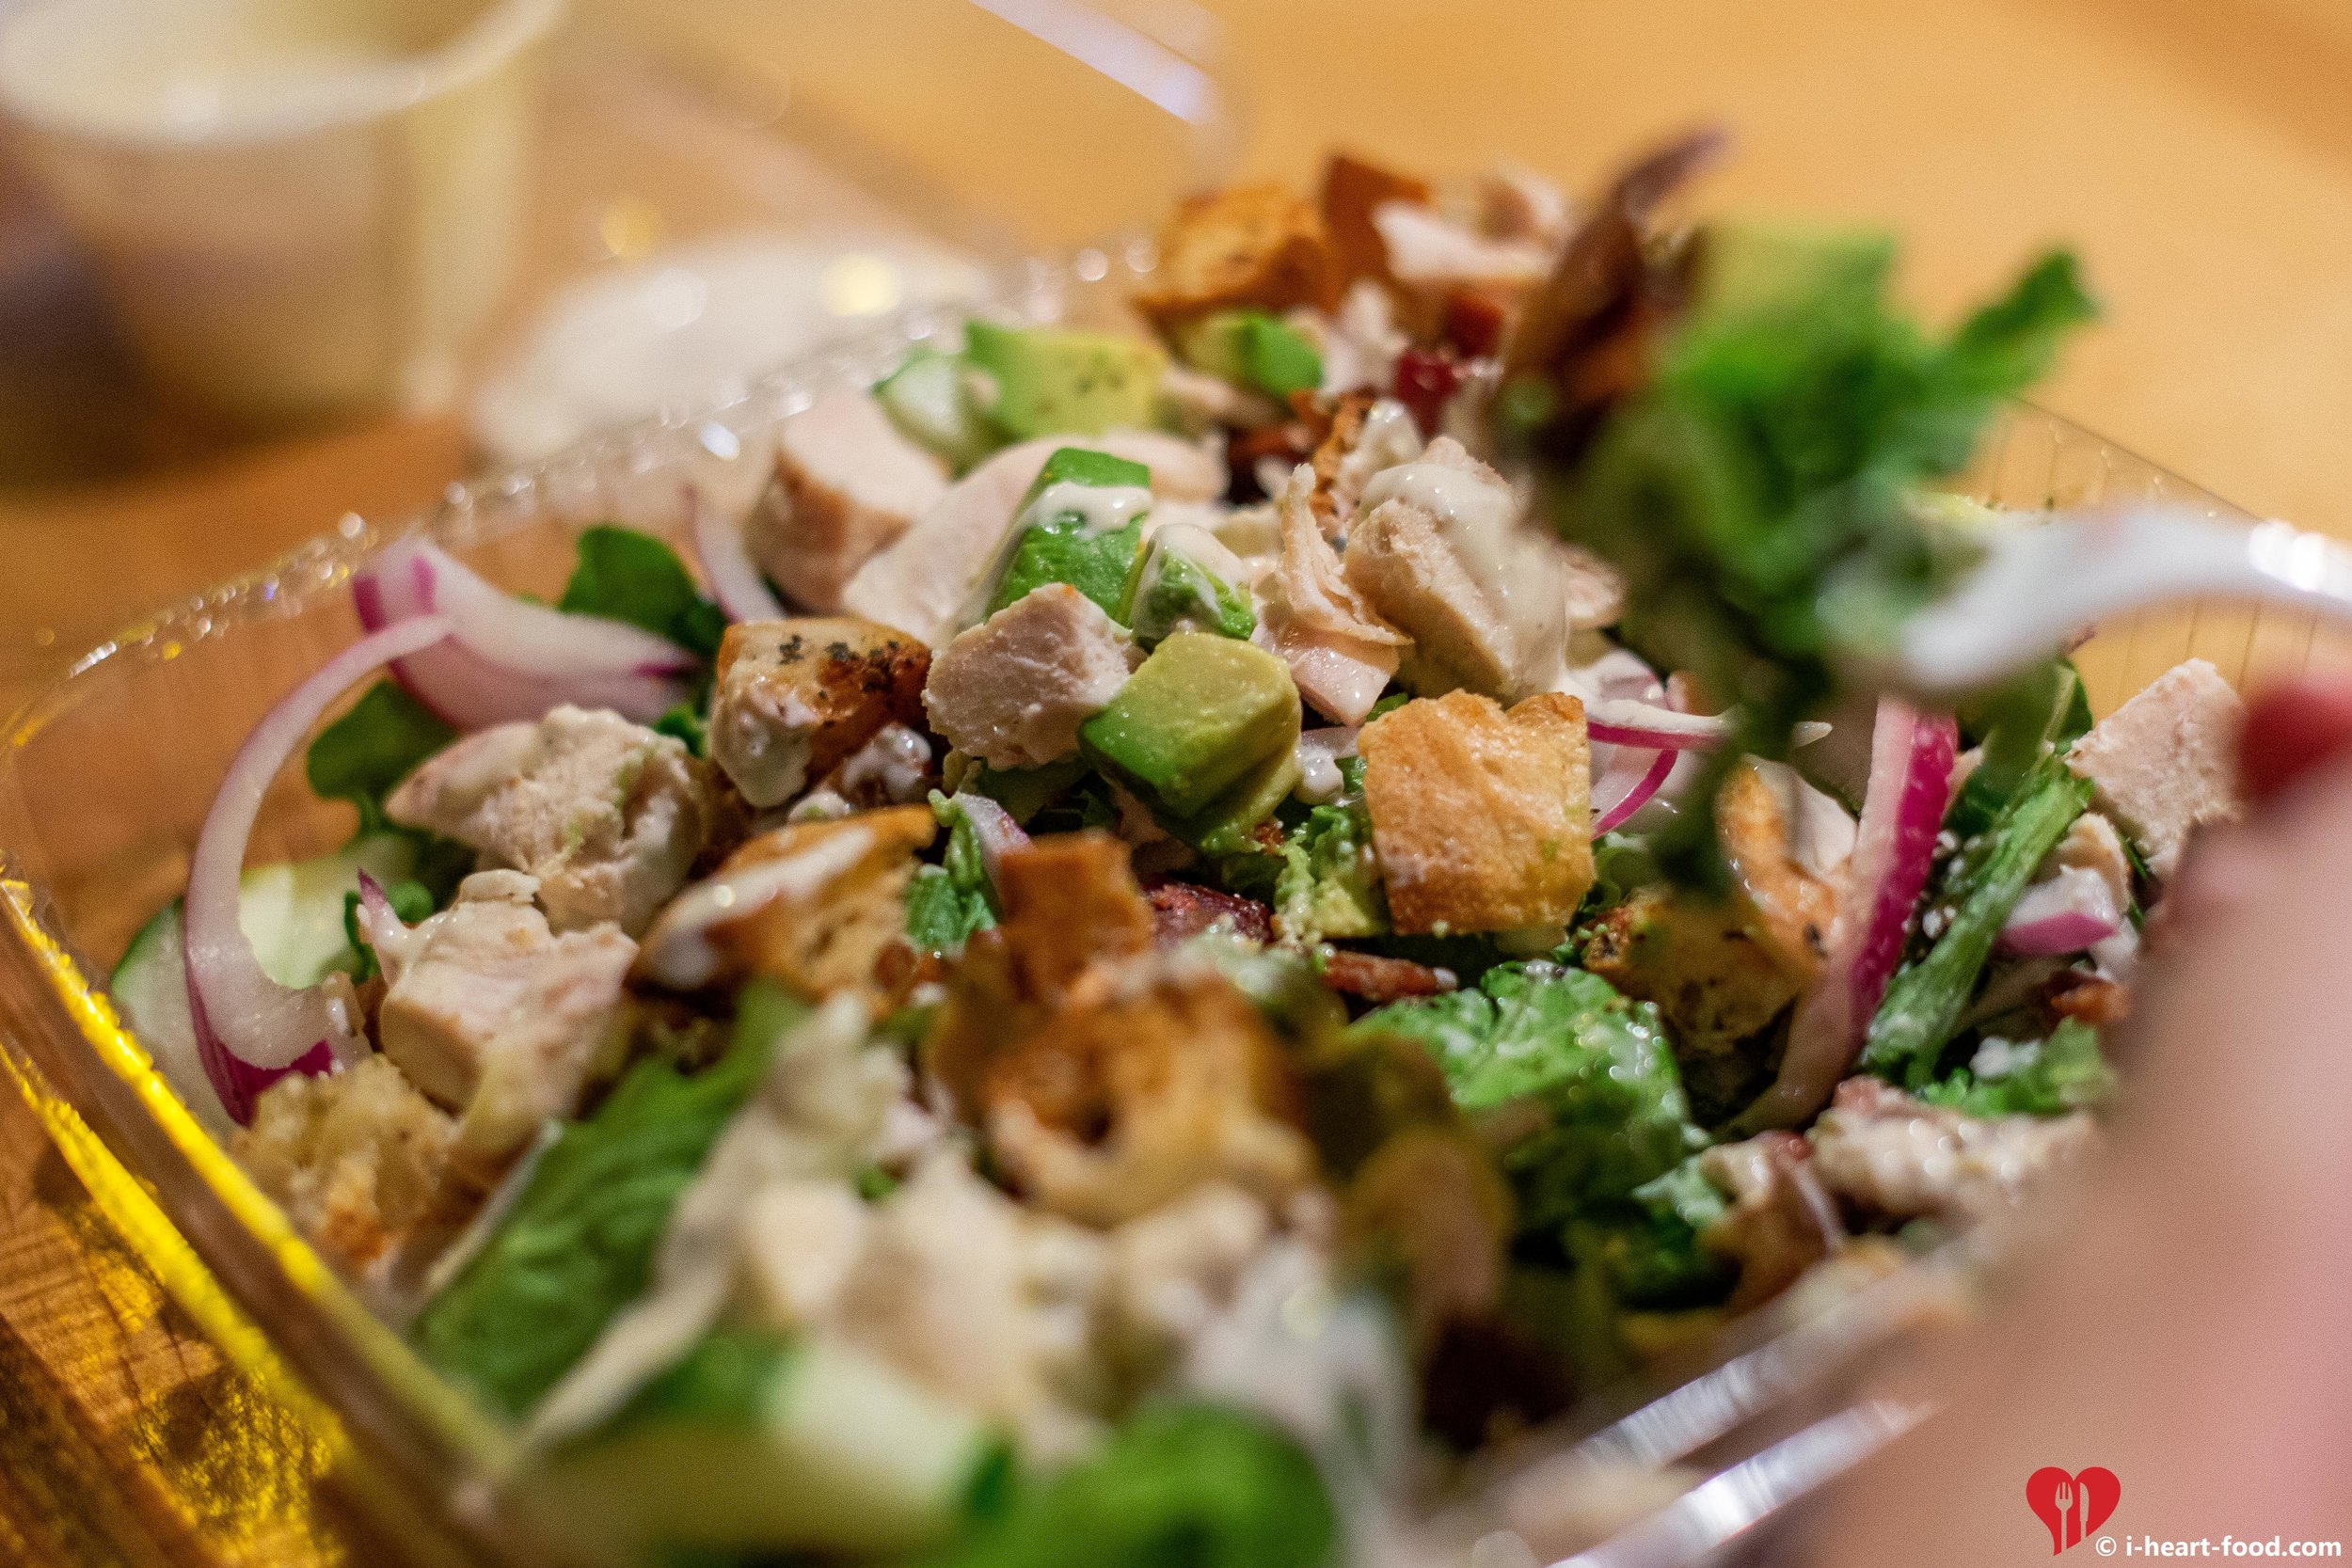 The Ten Top's Cobb Salad with Chicken